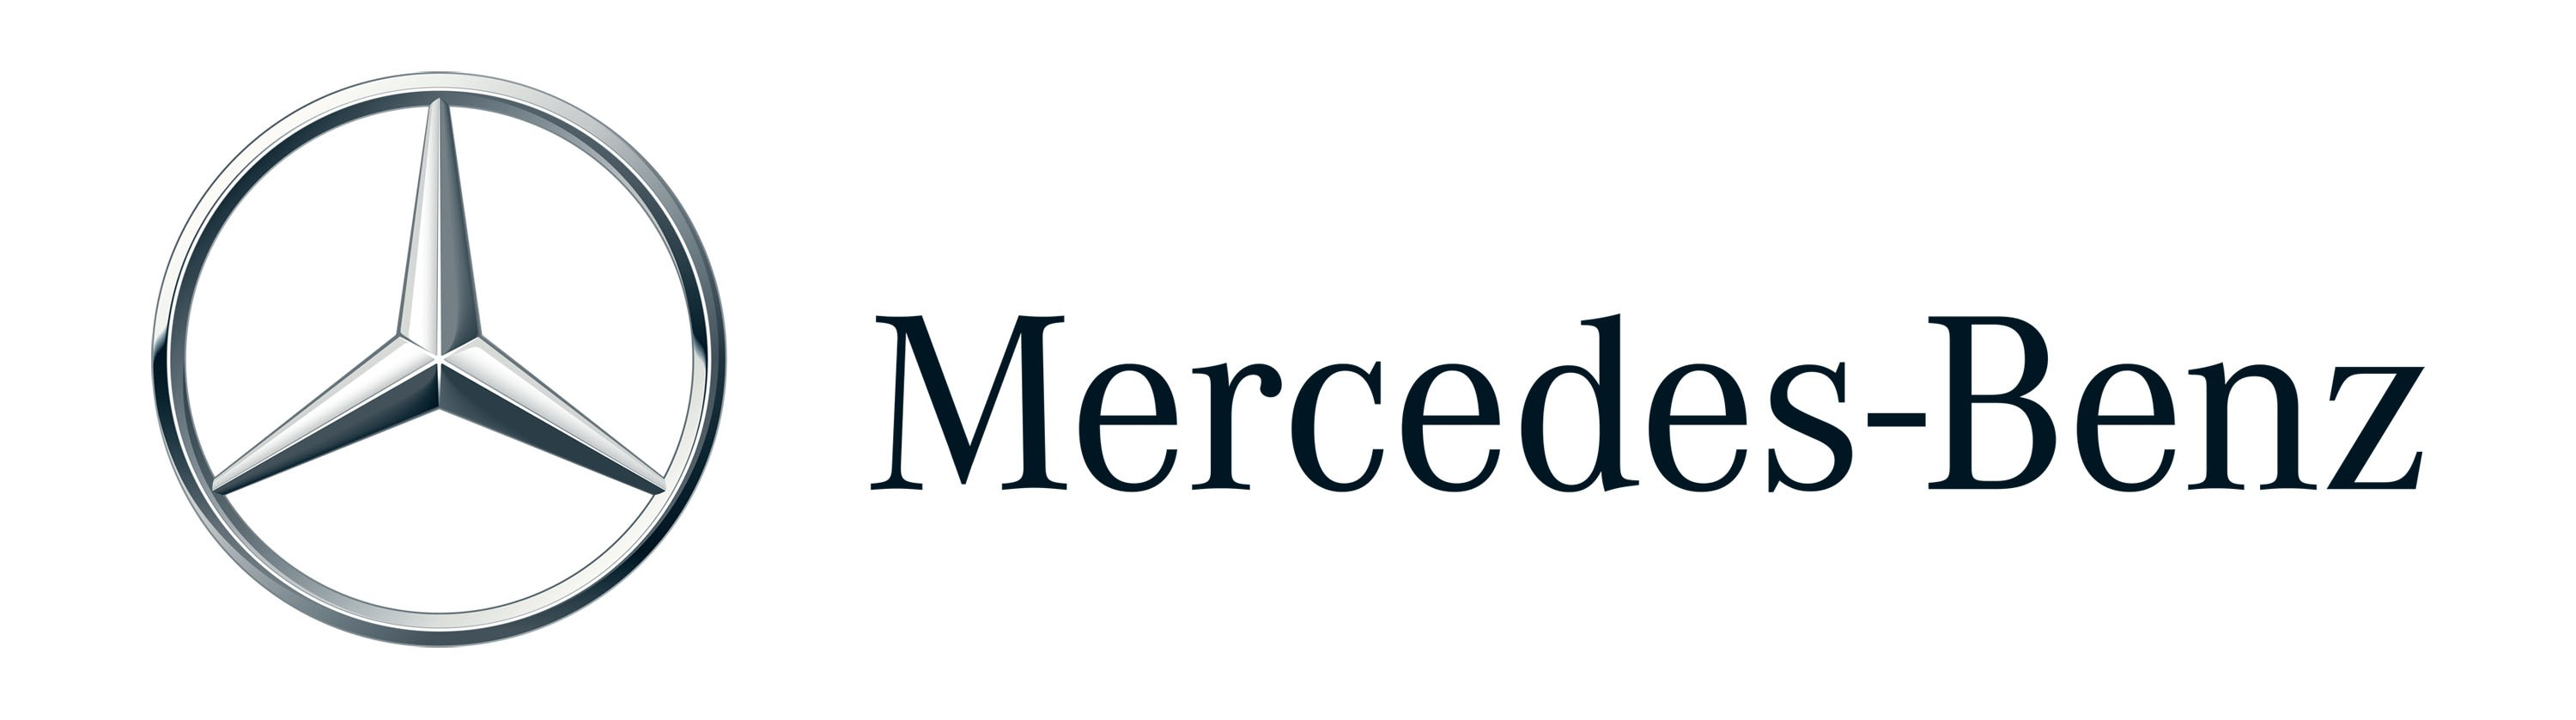 Mercedes benz logo wallpapers pictures images for Mercedes benz employee